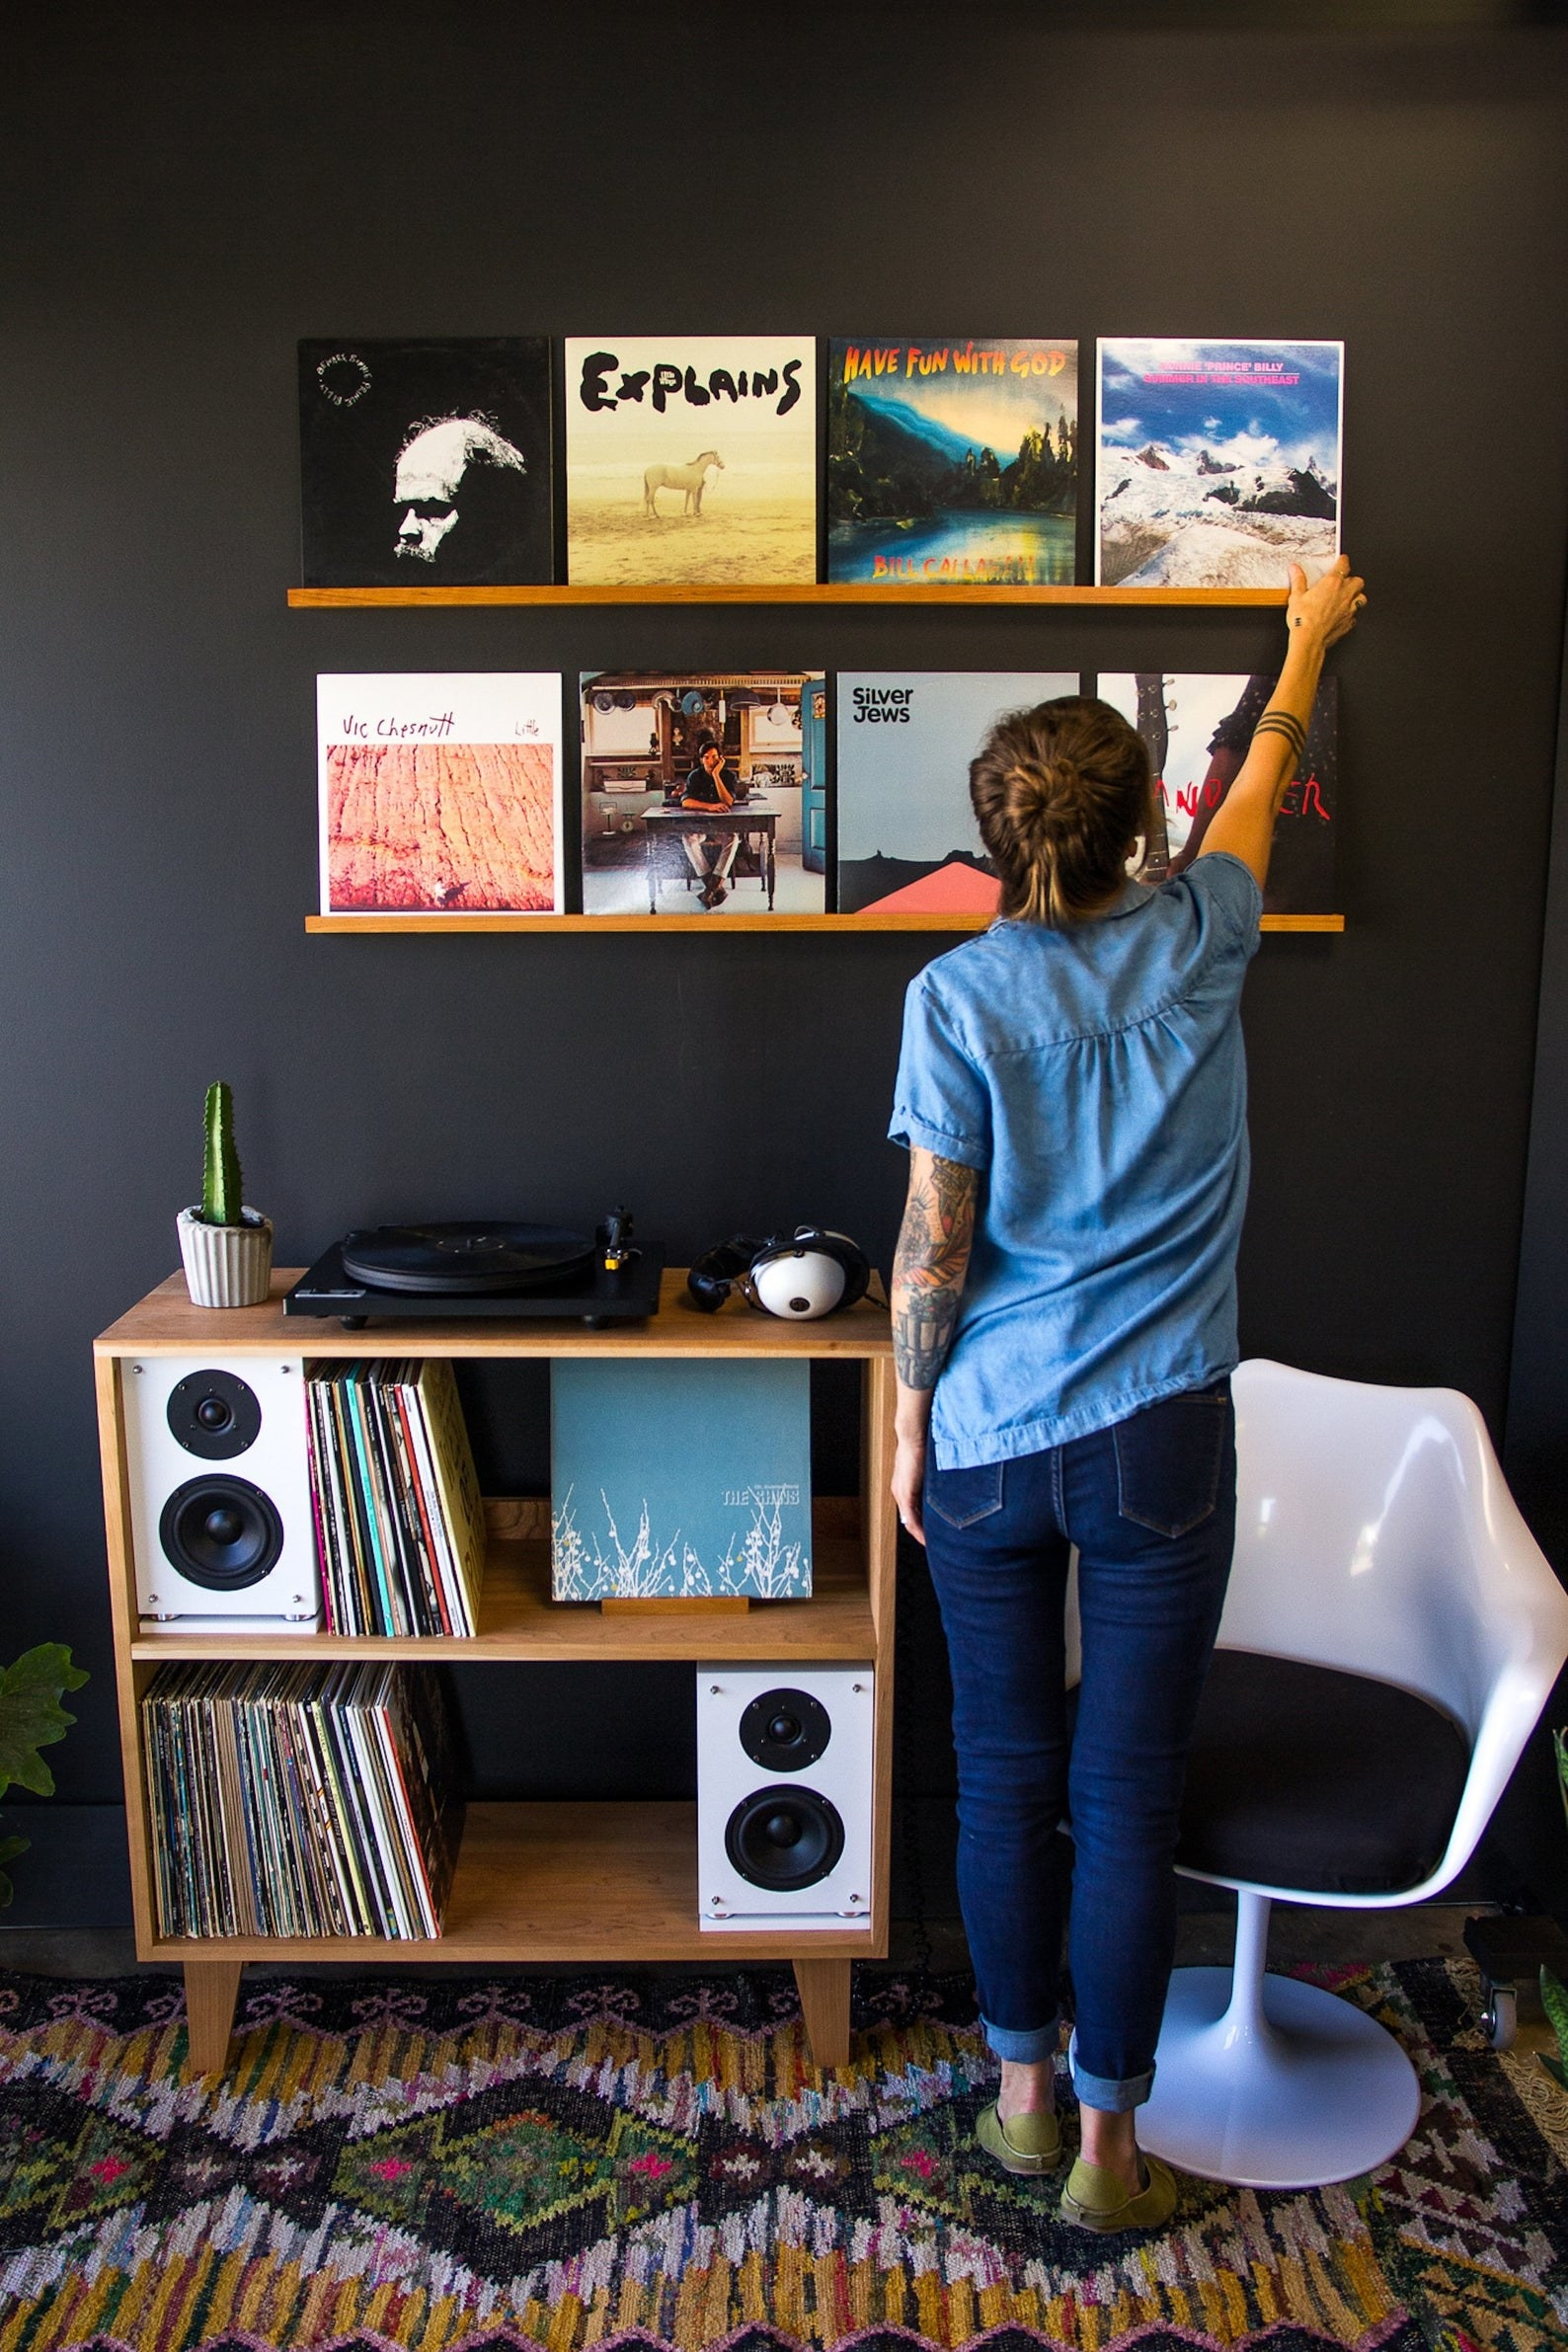 Two ledges displaying a variety of records above a record player